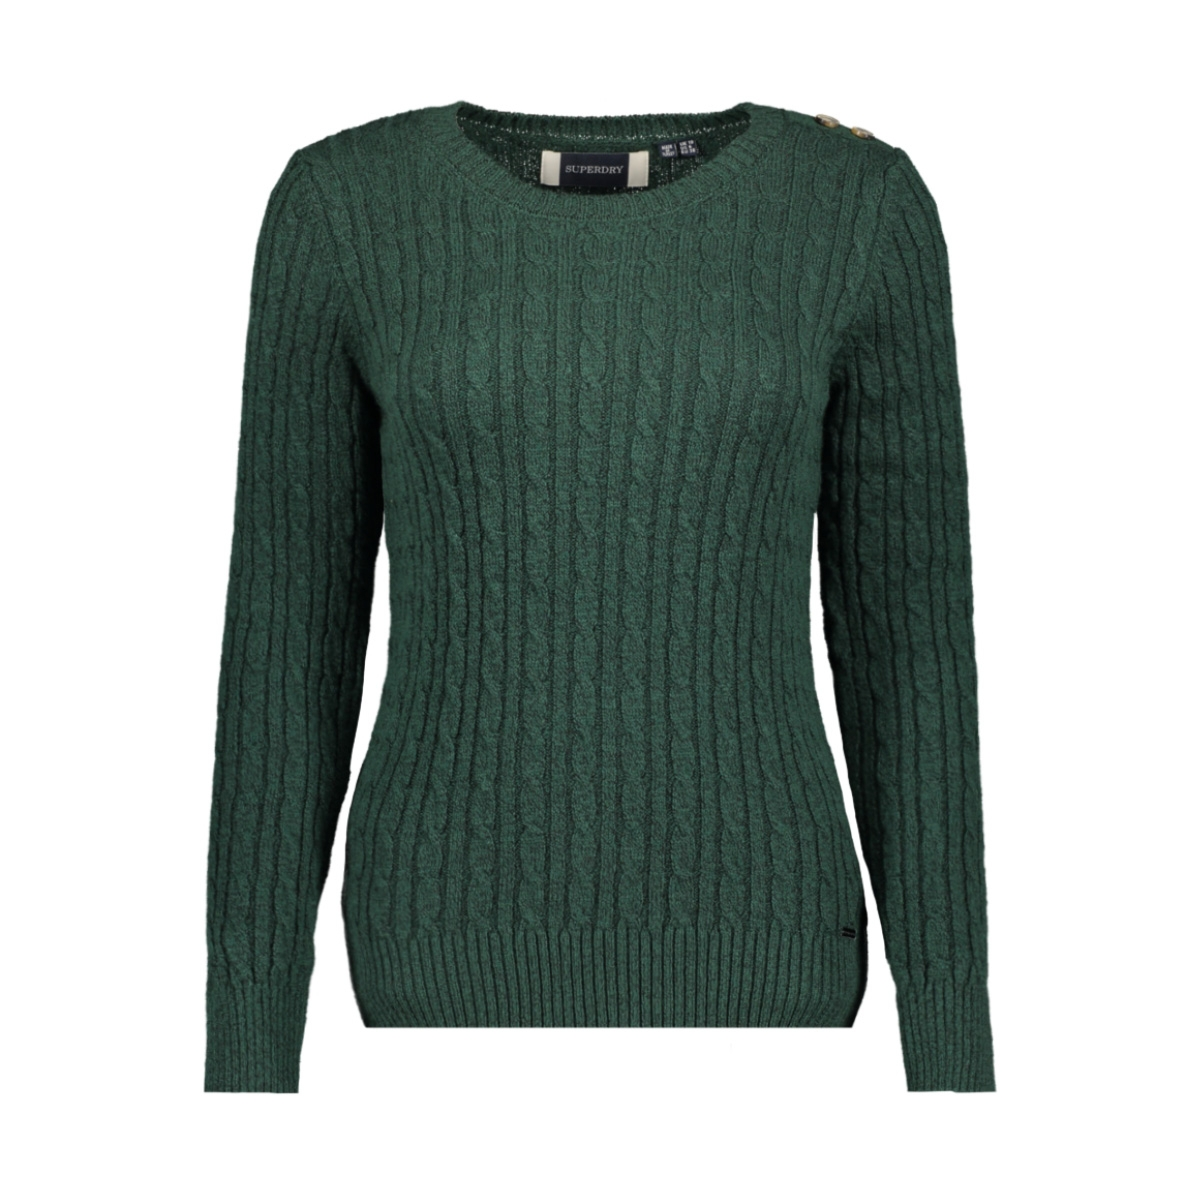 croyde cable knit w6100007a superdry trui emerald green